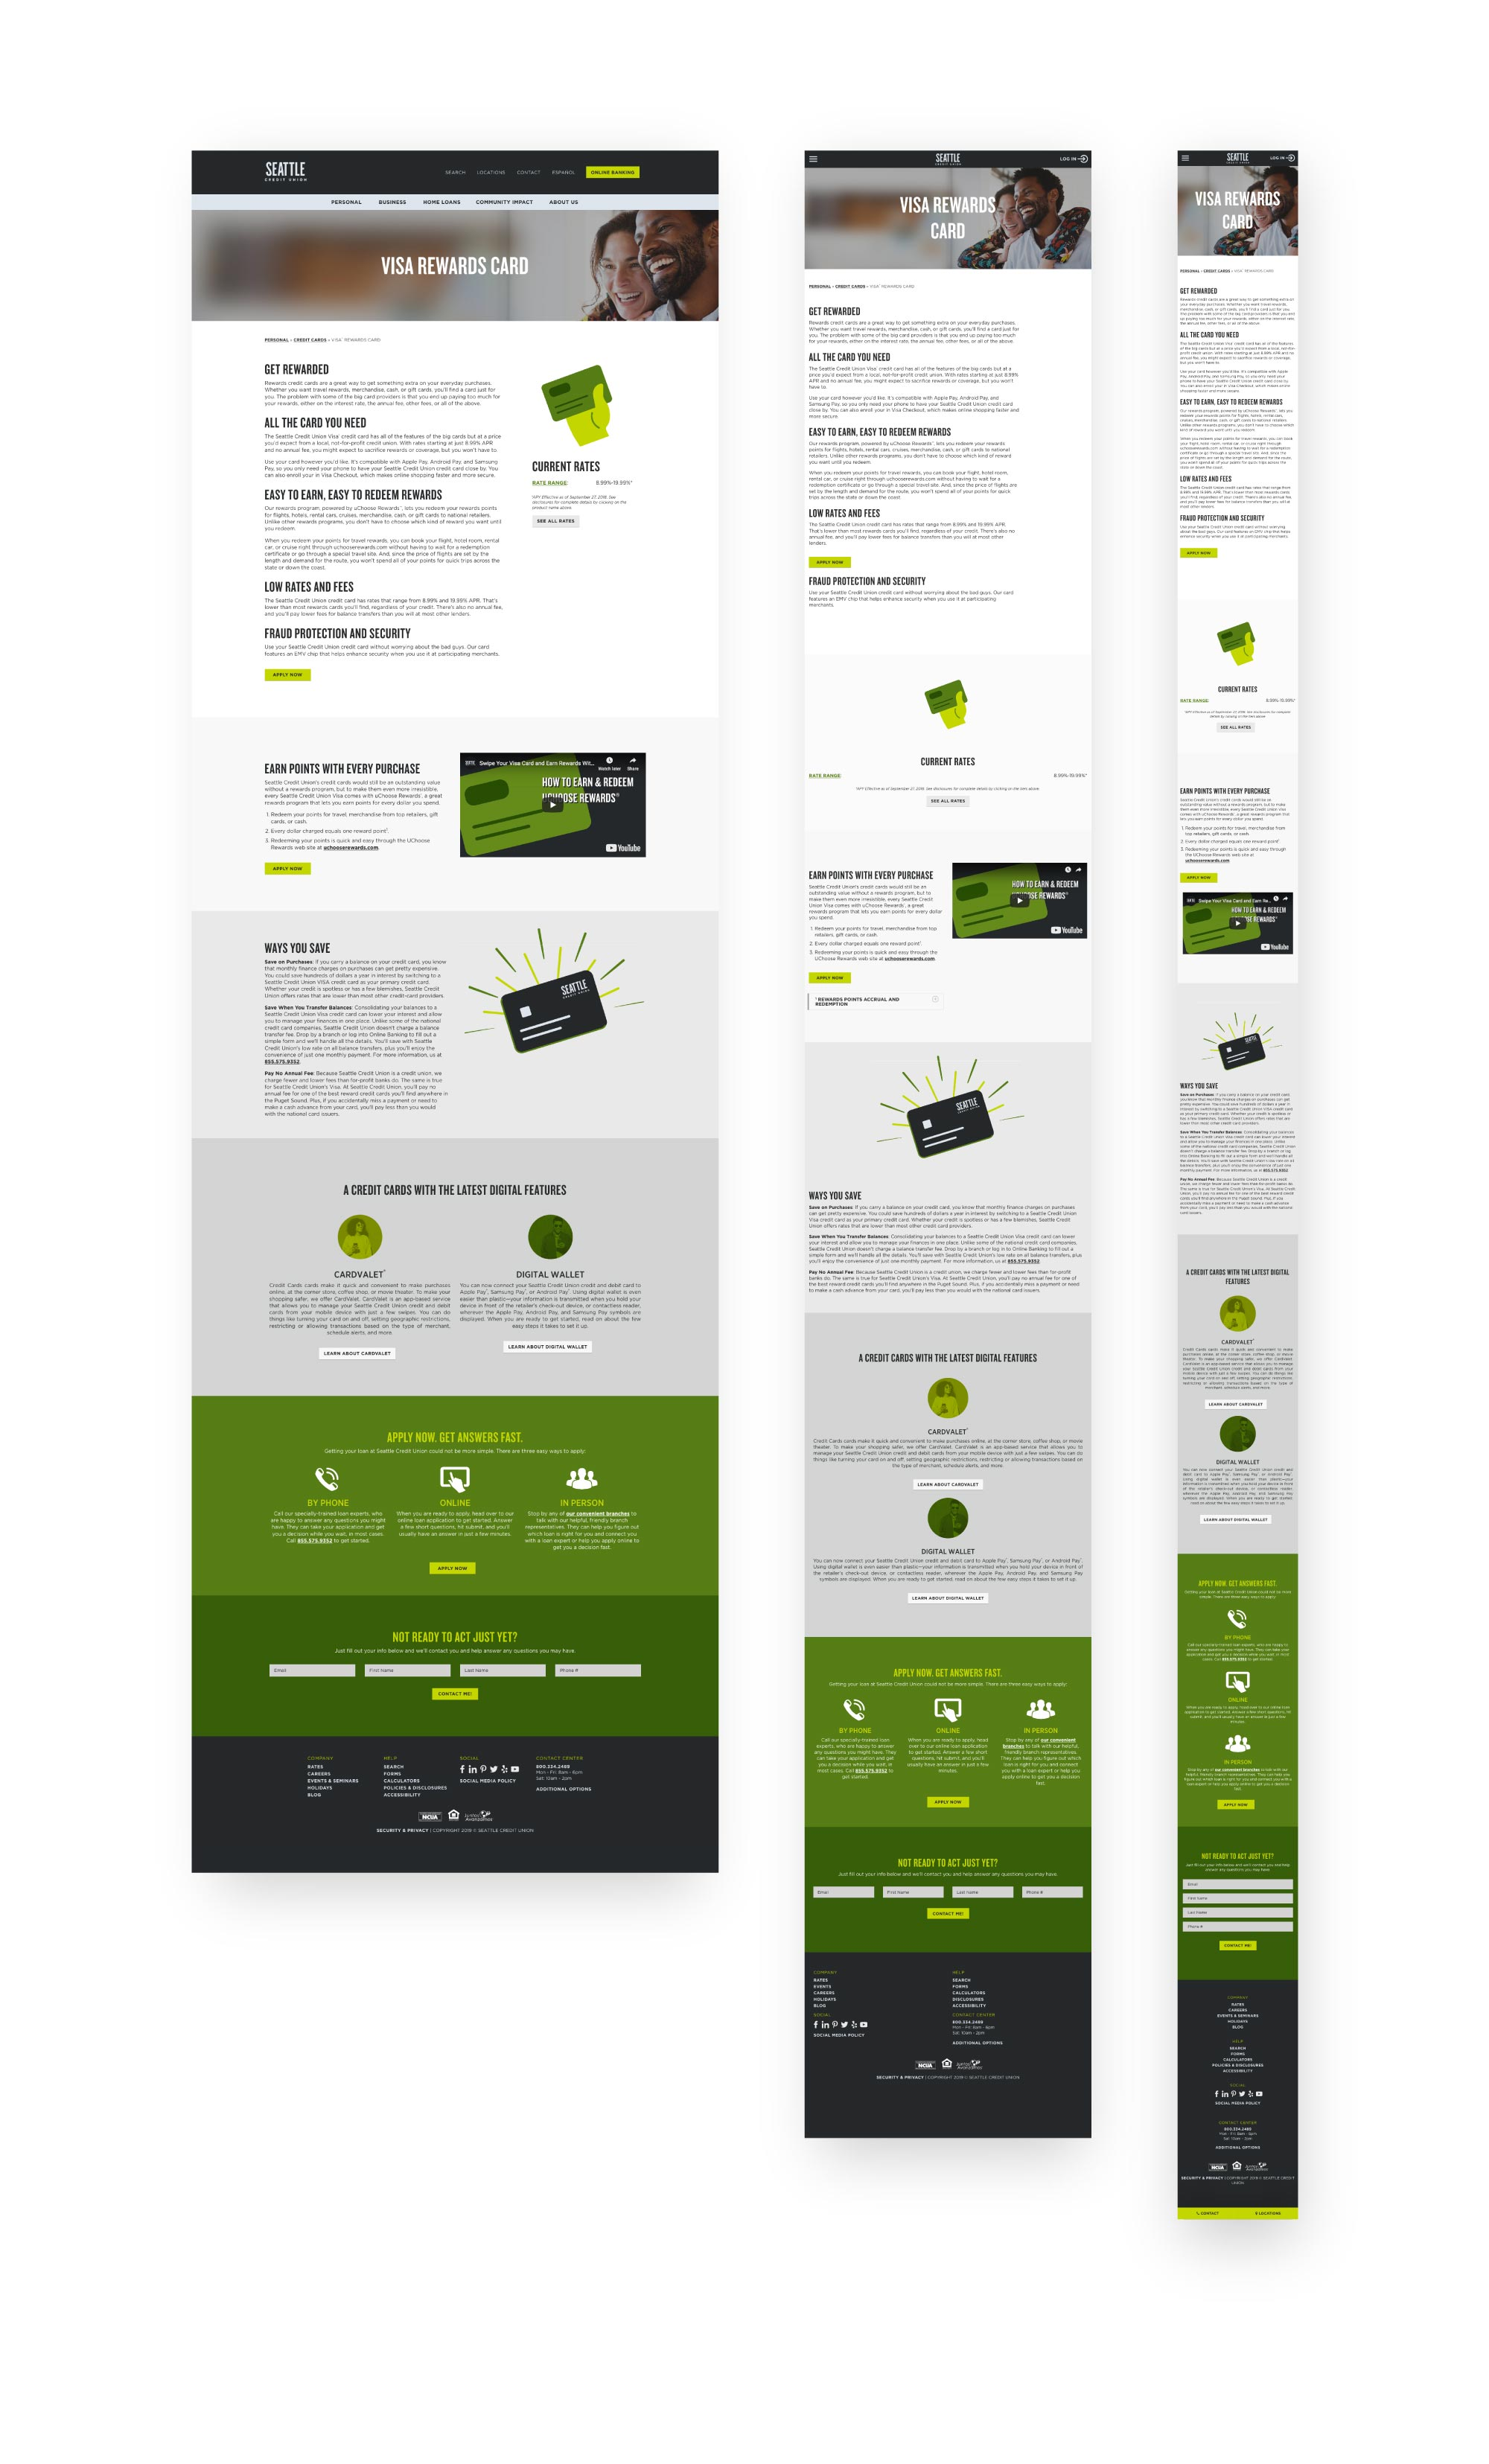 High fidelity product pages